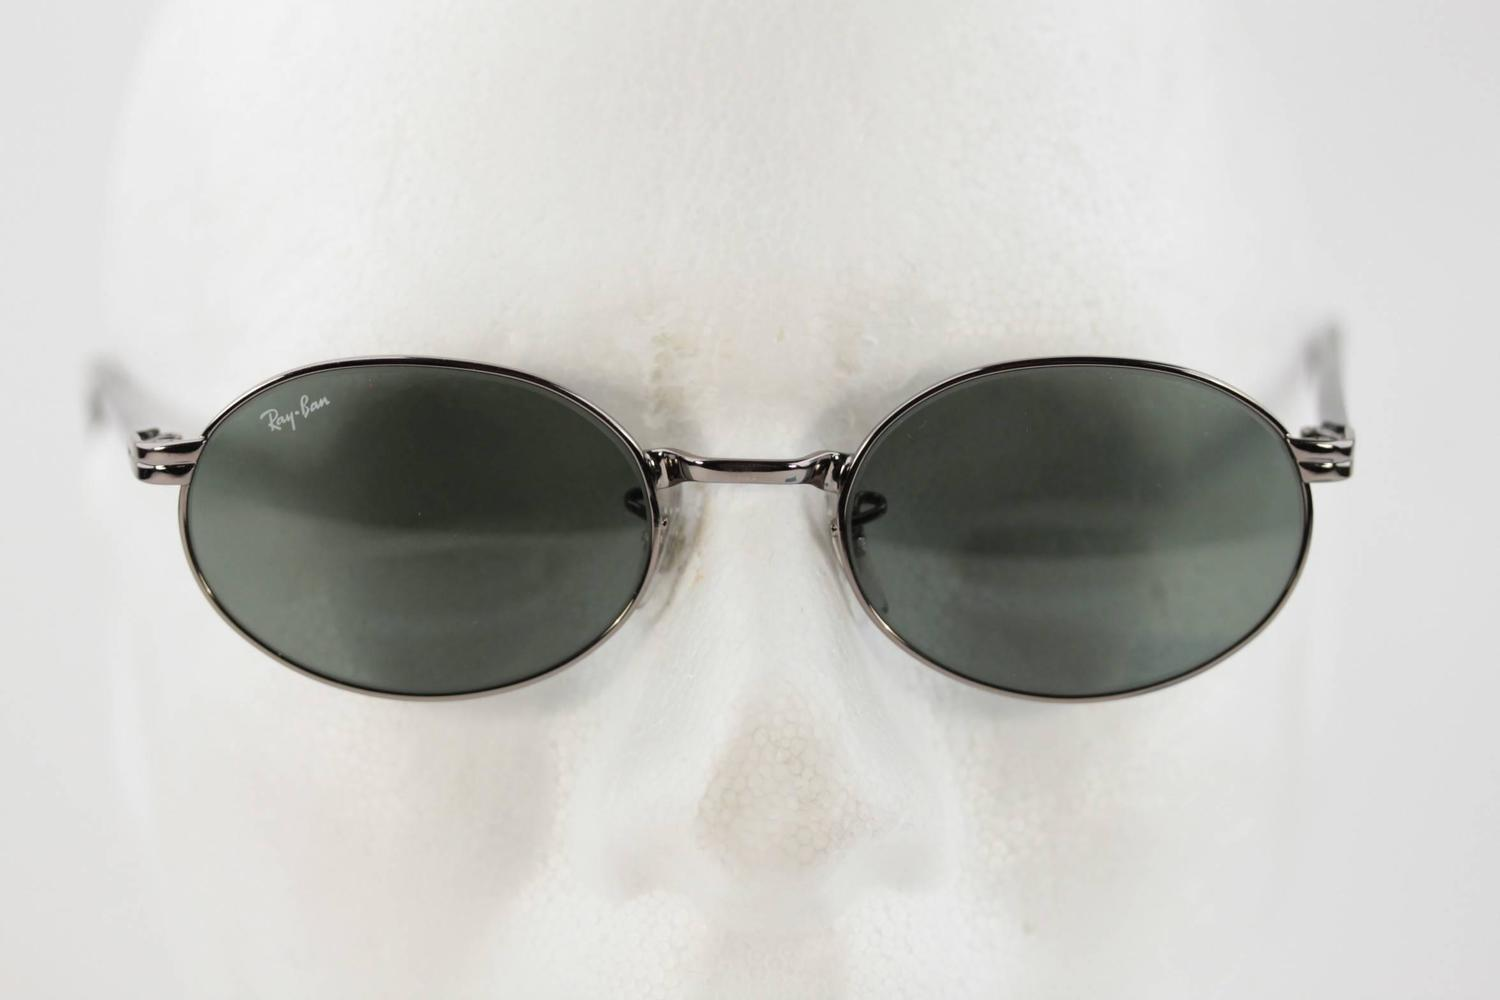 vintage ray ban sunglasses for sale  vintage ray ban sunglasses for sale